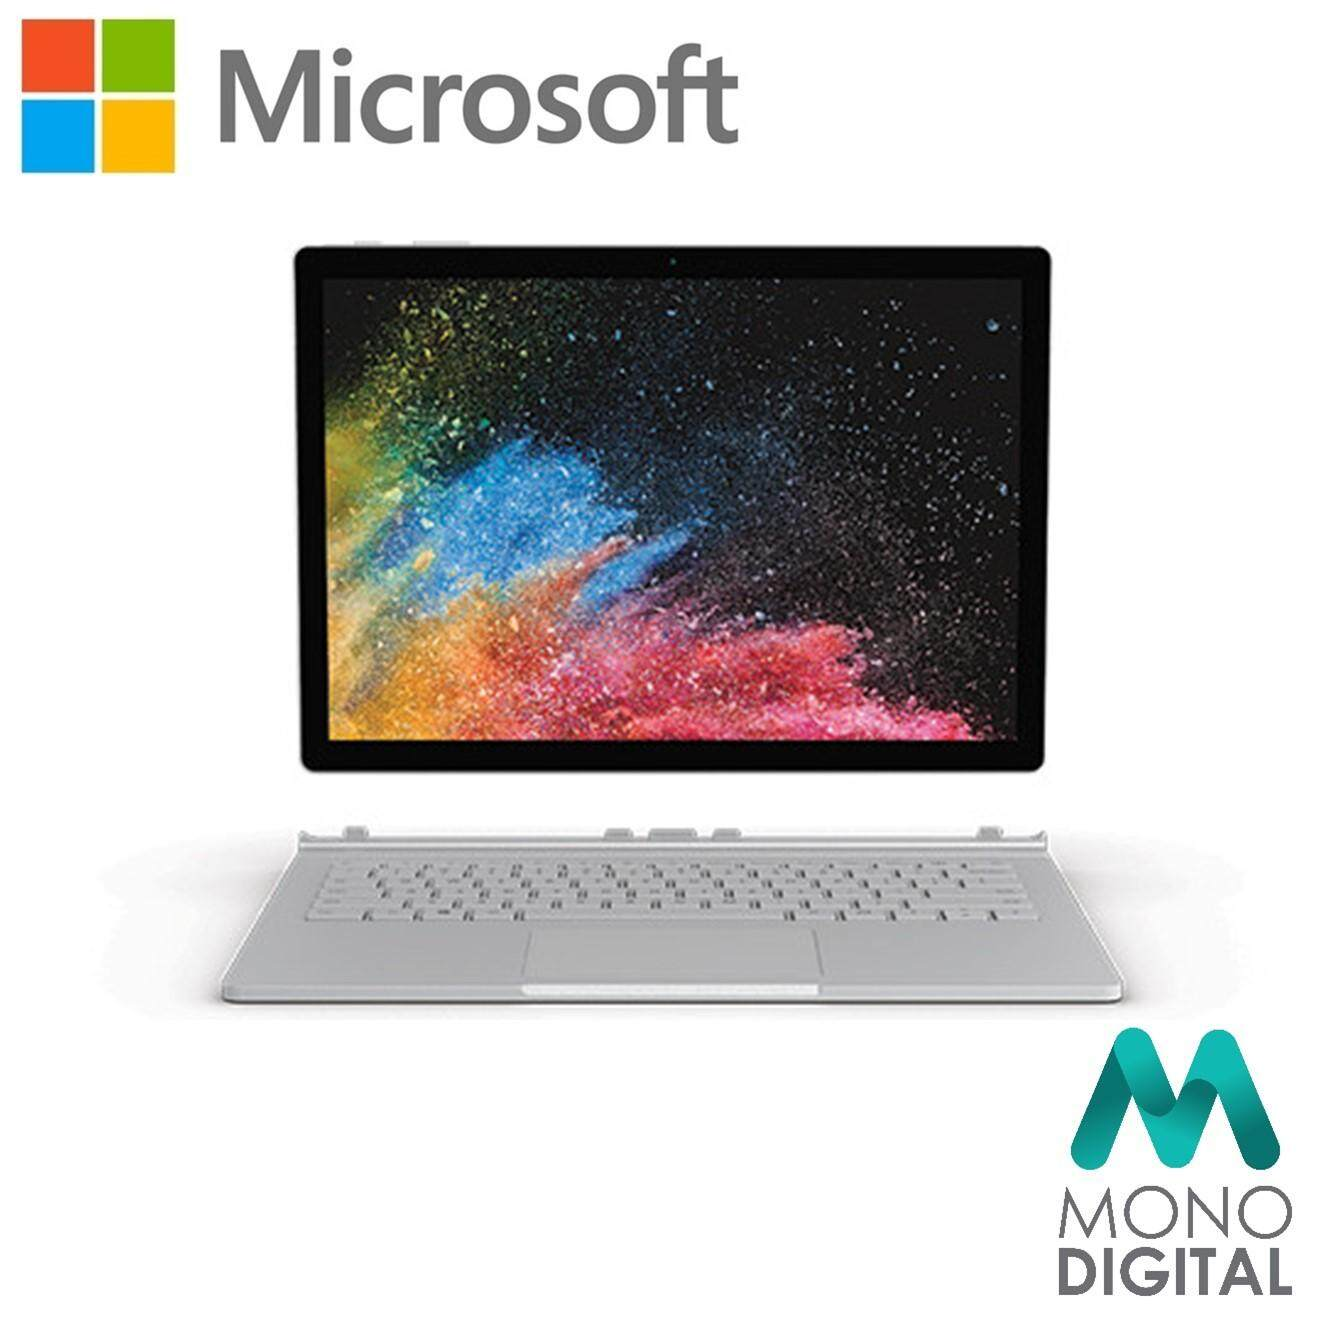 Microsoft Surface Book 2 13 Core i5 / 256GB SSD / 8GB RAM Window 10 Pro (HMW-00030) Malaysia